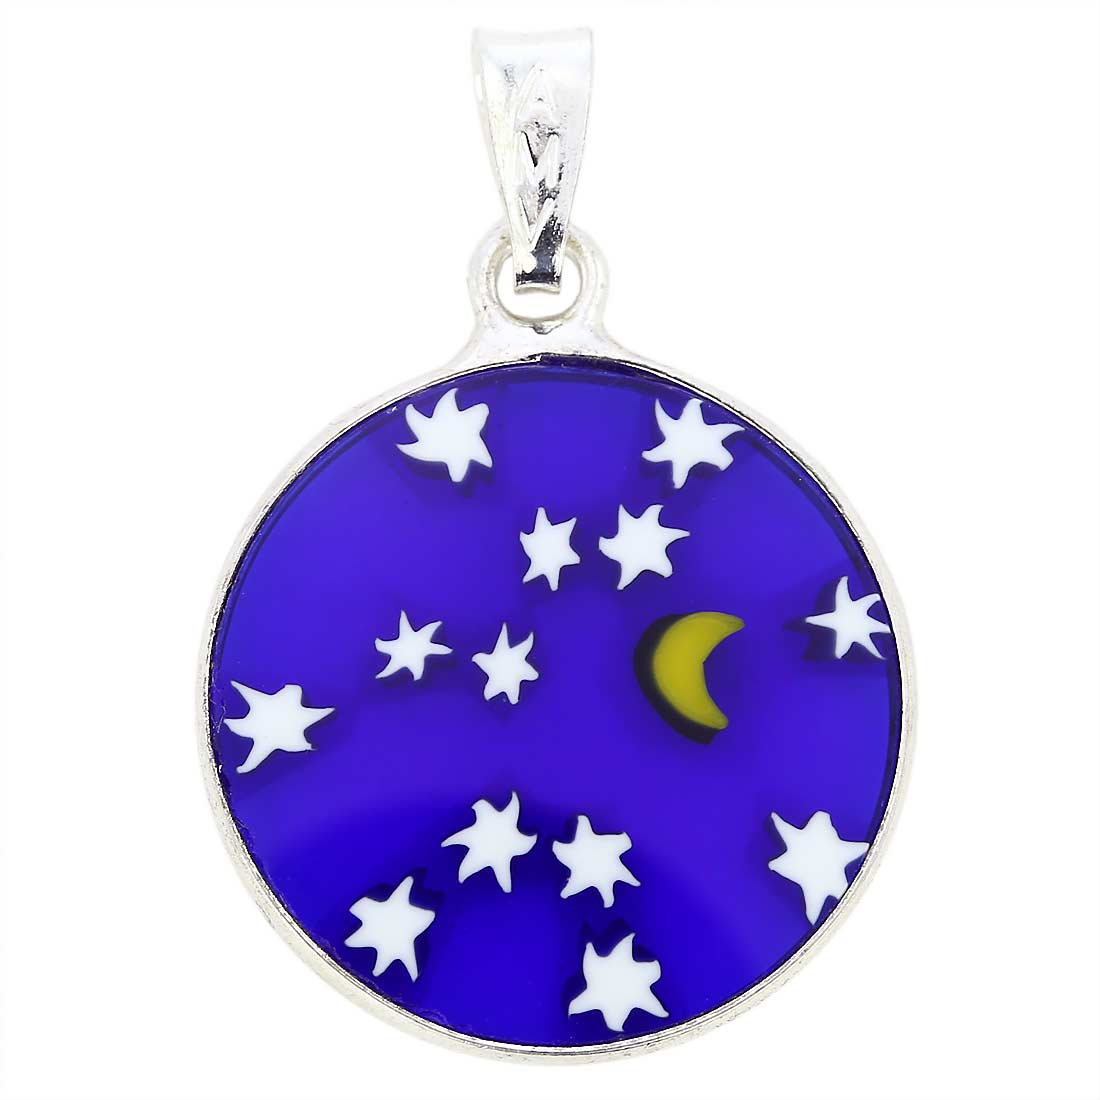 "Small Millefiori Pendant ""Starry Night\"" in Silver Frame 18mm"